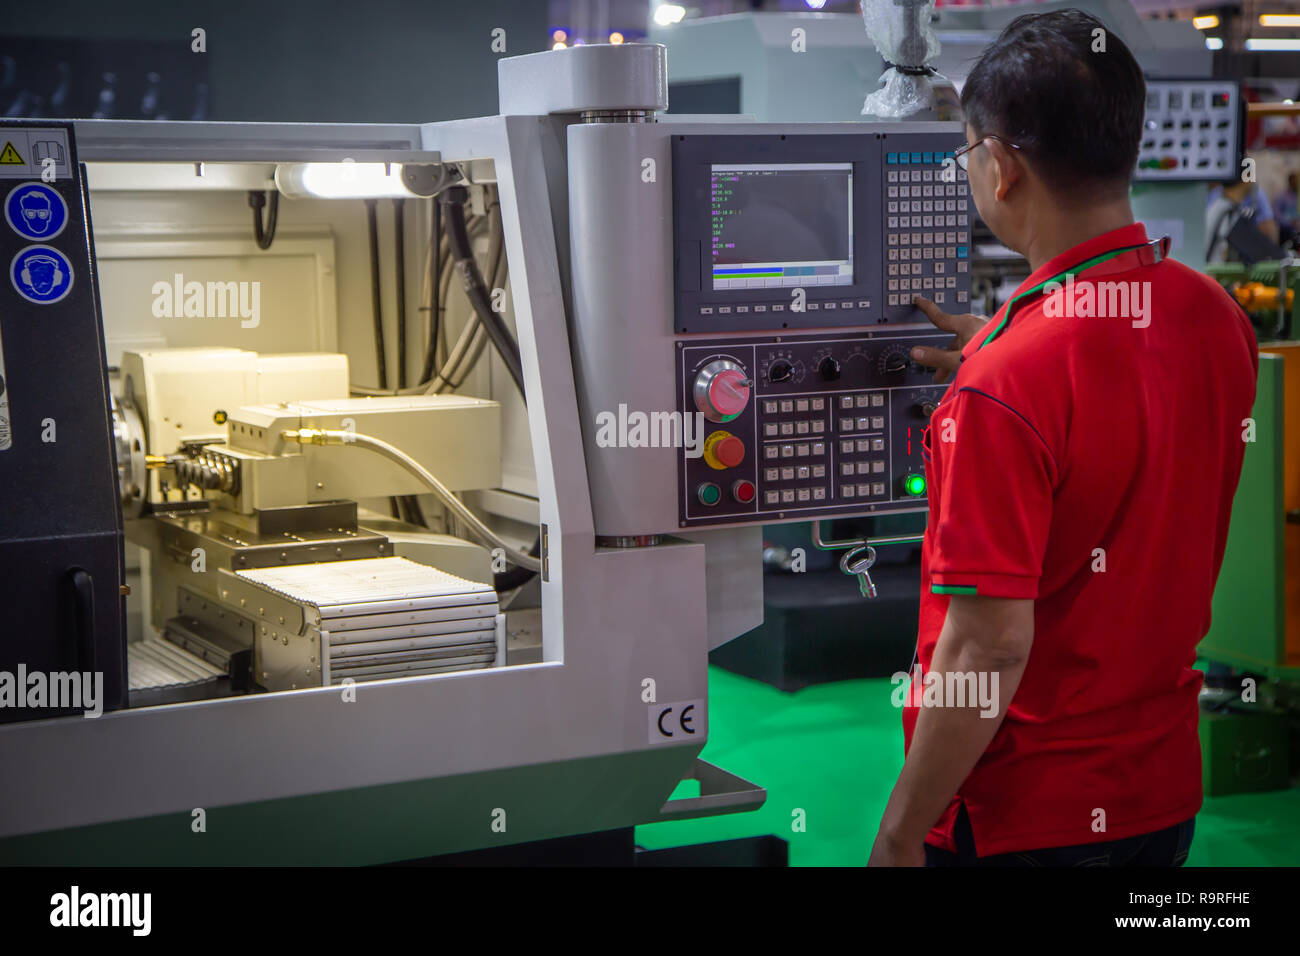 Worker input data for programing CNC machine - Stock Image